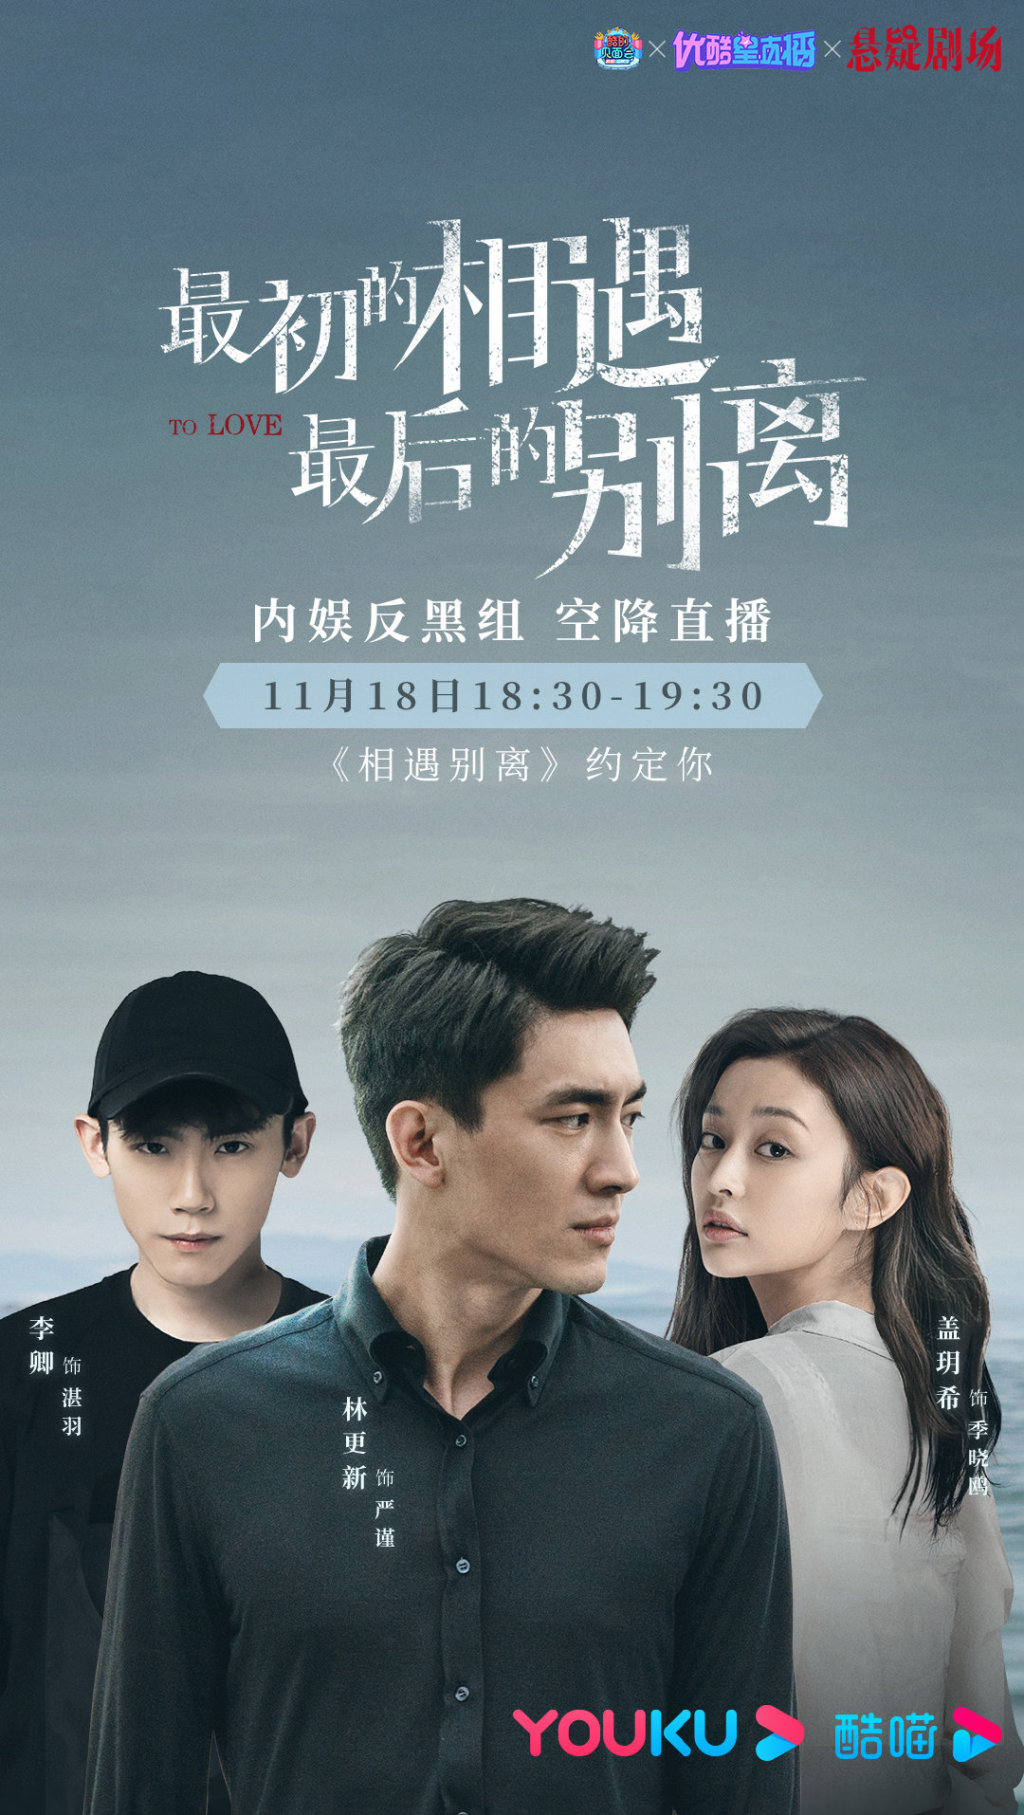 To Love Chinese Drama Poster